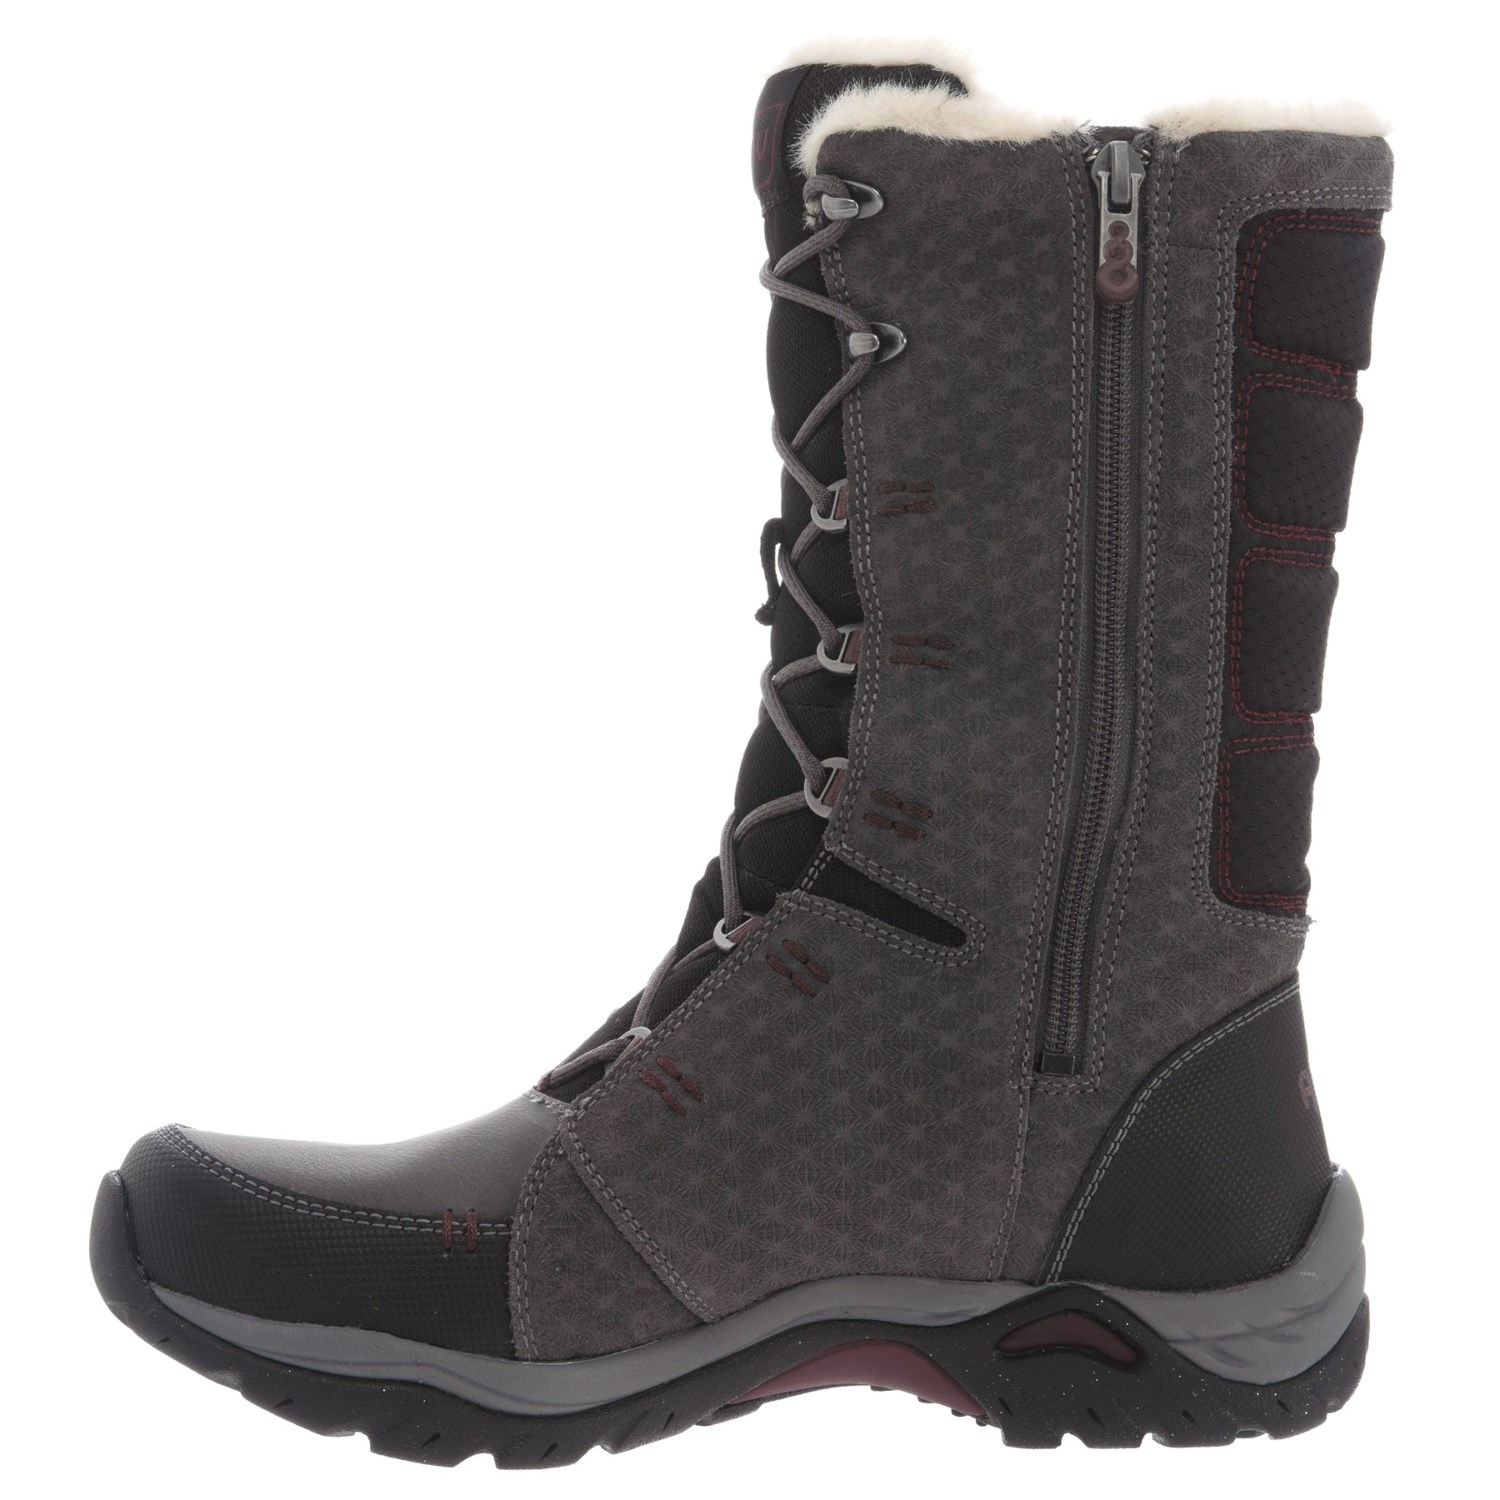 Ahnu Northridge Snow Boots For Women 8727f Save 30